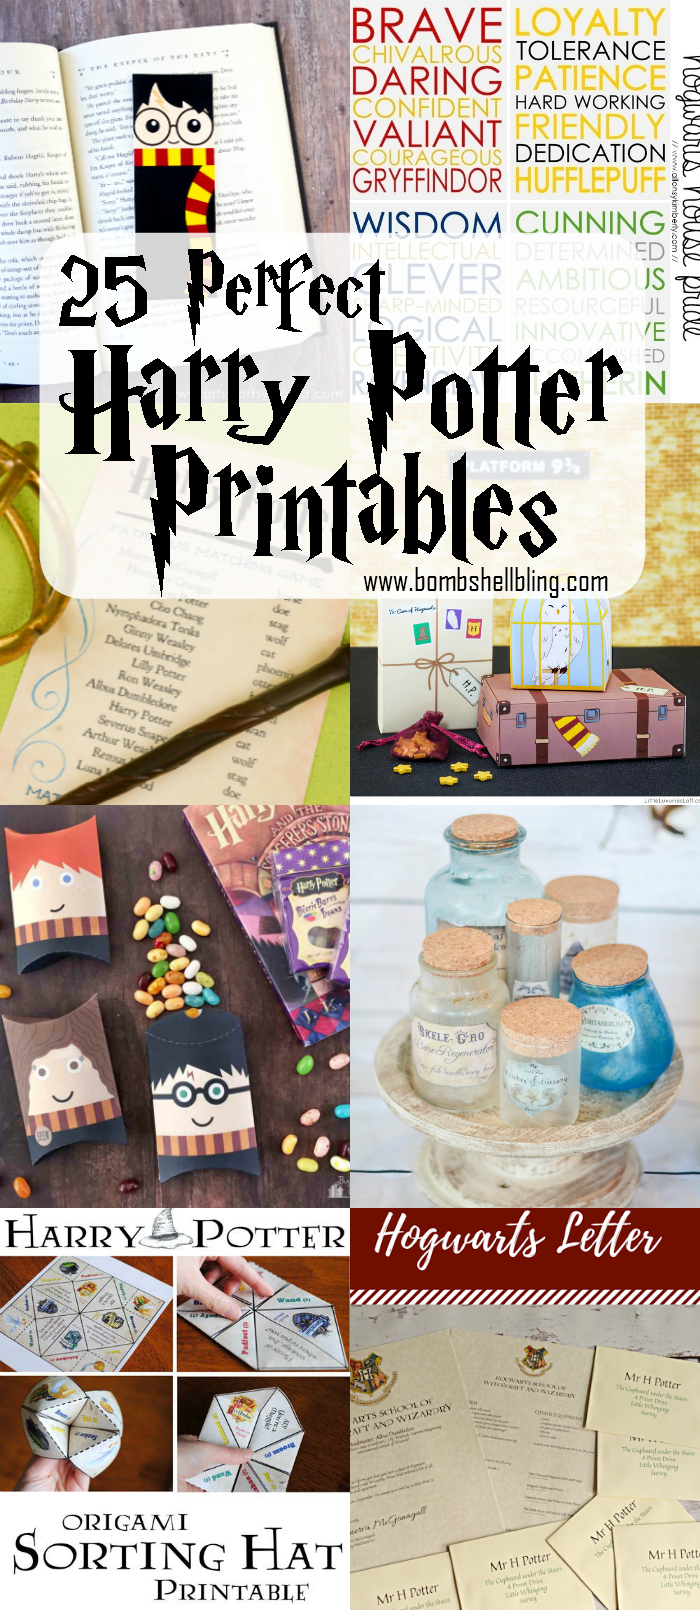 graphic regarding Harry Potter Printable Bookmarks identify 25 Fantastic Harry Potter Printables - Gathered via Bombs